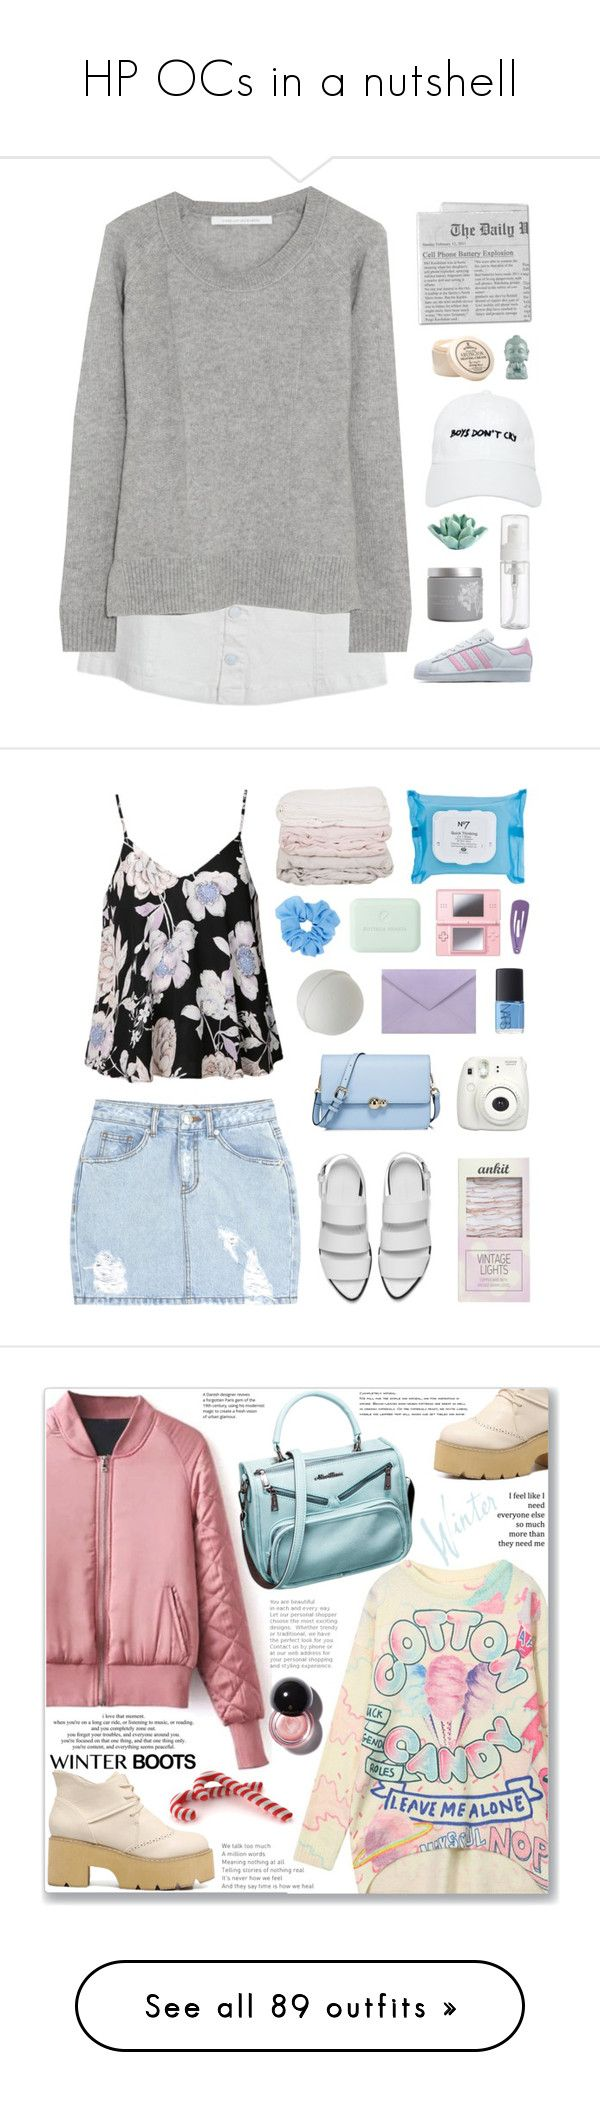 """HP OCs in a nutshell"" by circusclownjojo ❤ liked on Polyvore featuring Diane Von Furstenberg, Nasaseasons, red flower, adidas Originals, HomArt, D.R. Harris & Co Ltd., SJYP, Ally Fashion, Alexander Wang and Fujifilm"